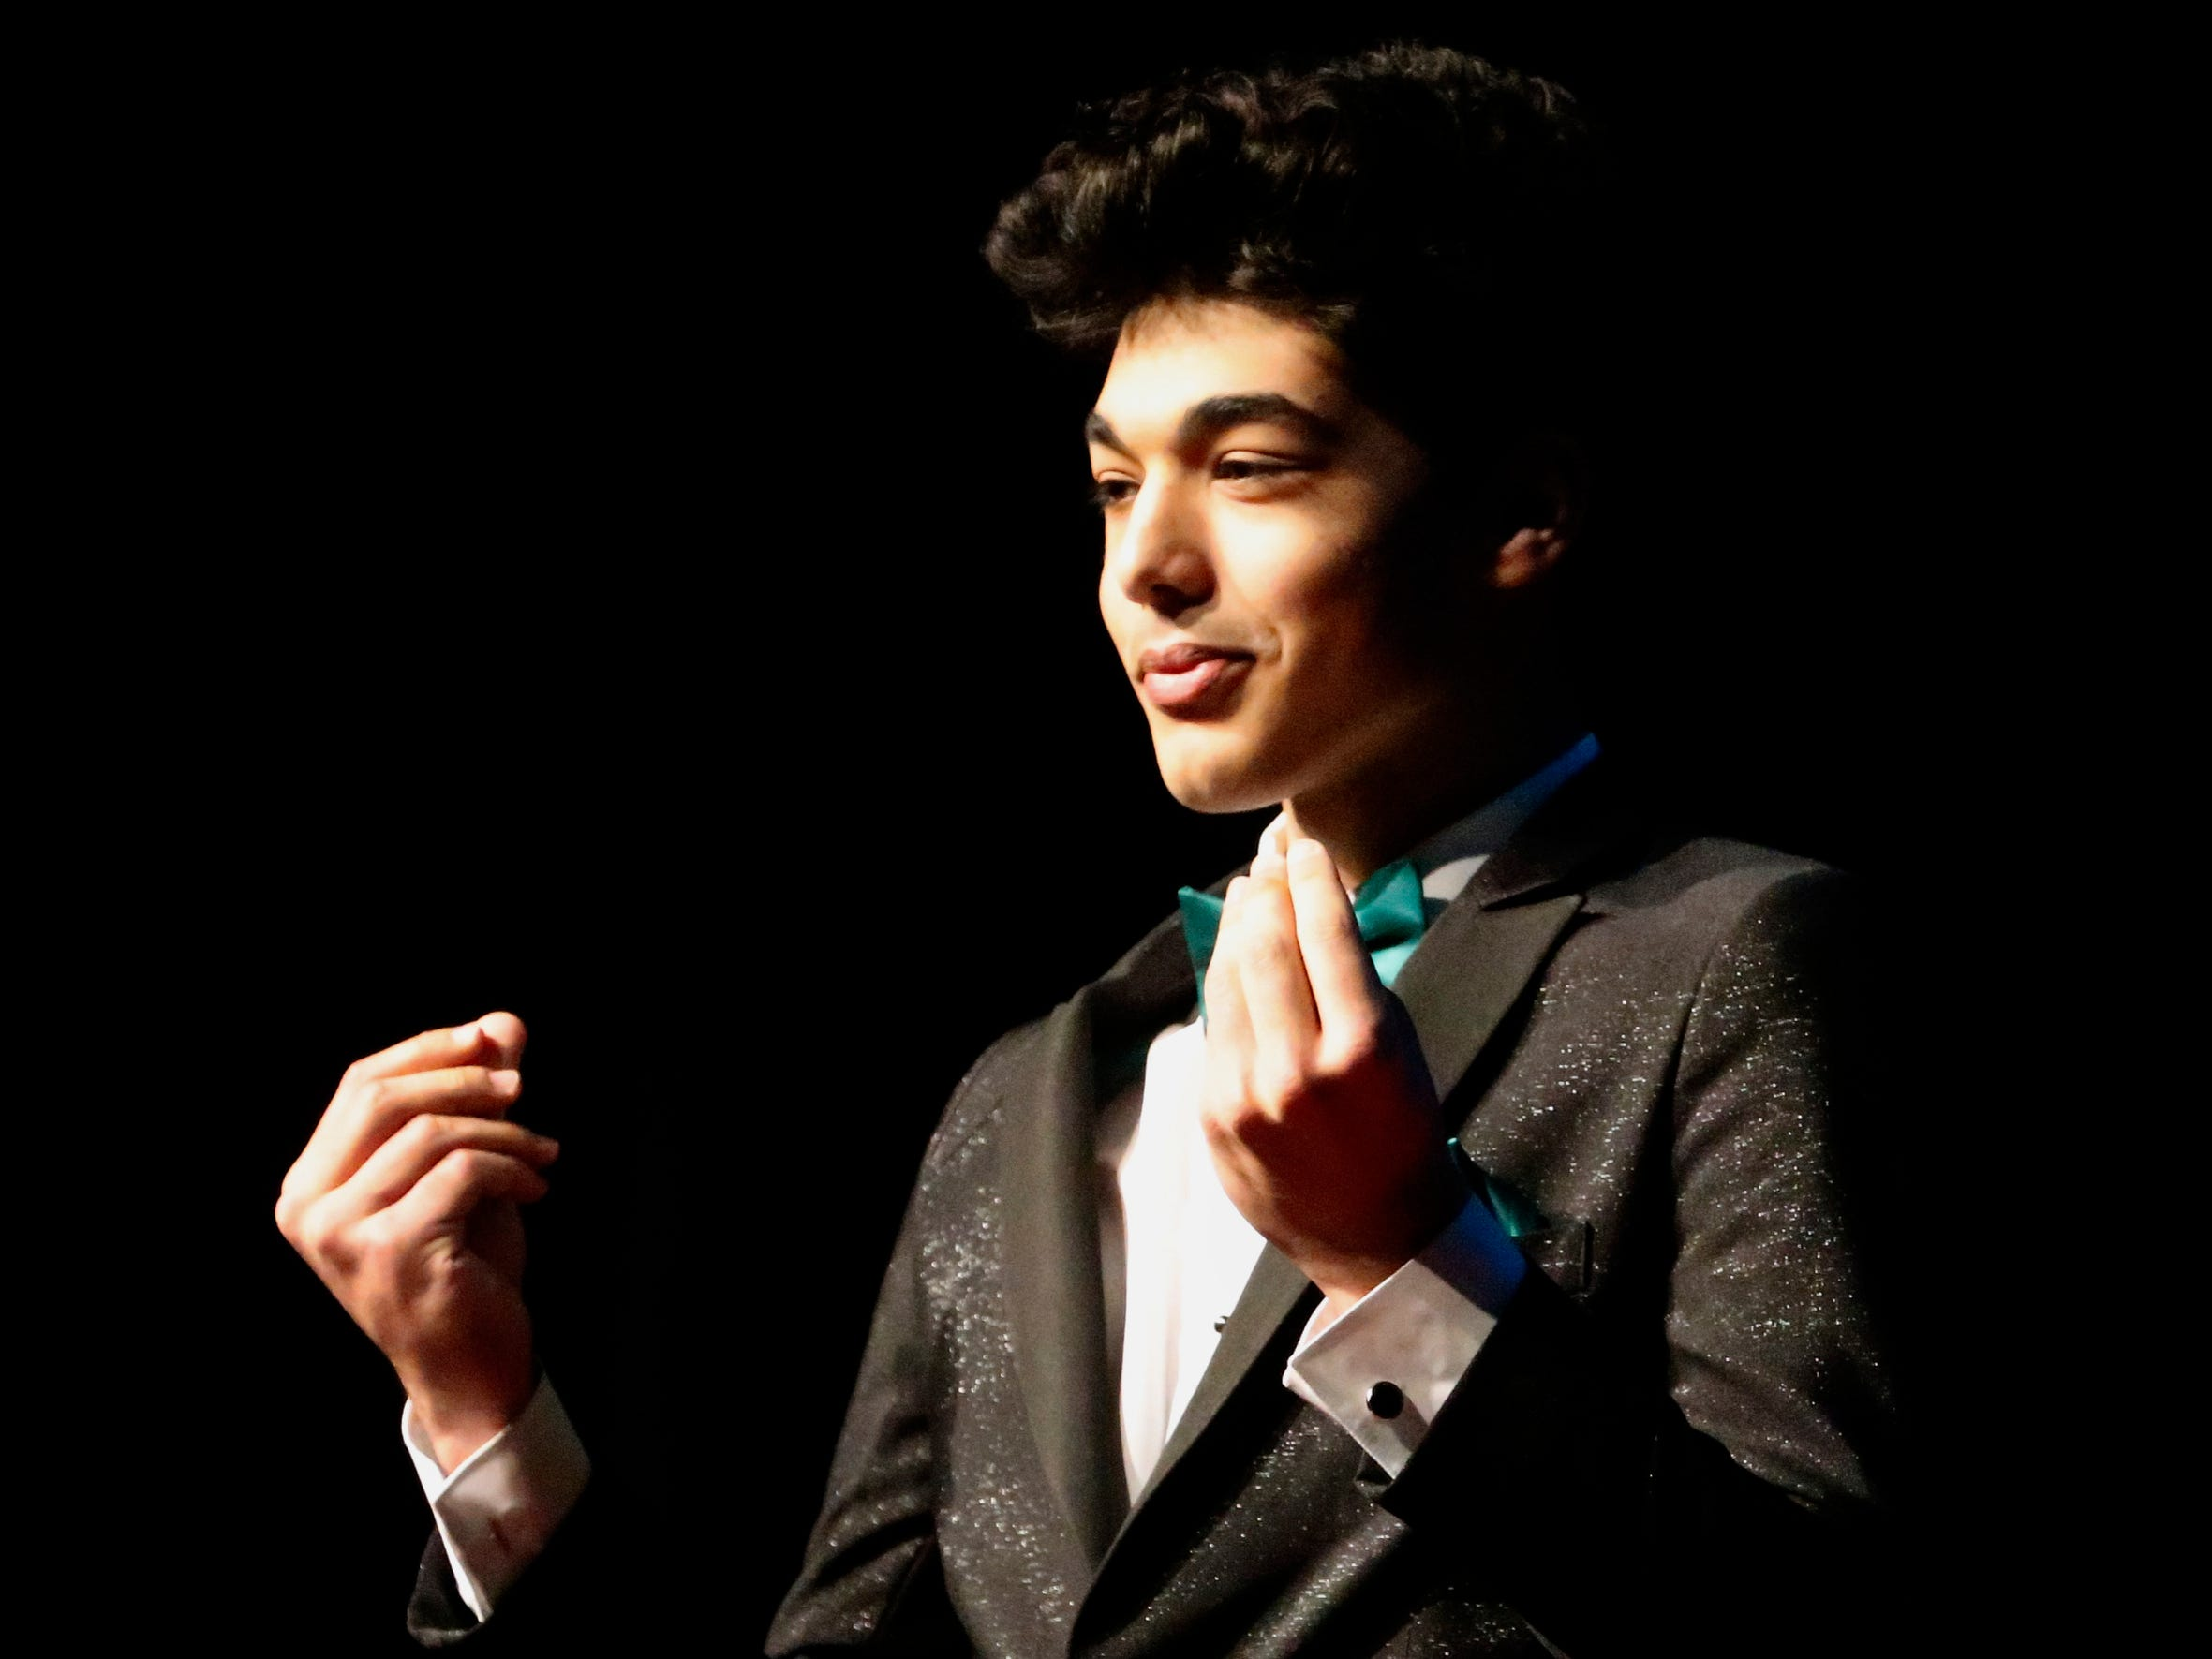 Hussain Alzubaidi shows off his tux at the end of the runway during the Siegel Prom Fashion show on Thursday, Feb. 14, 2019.